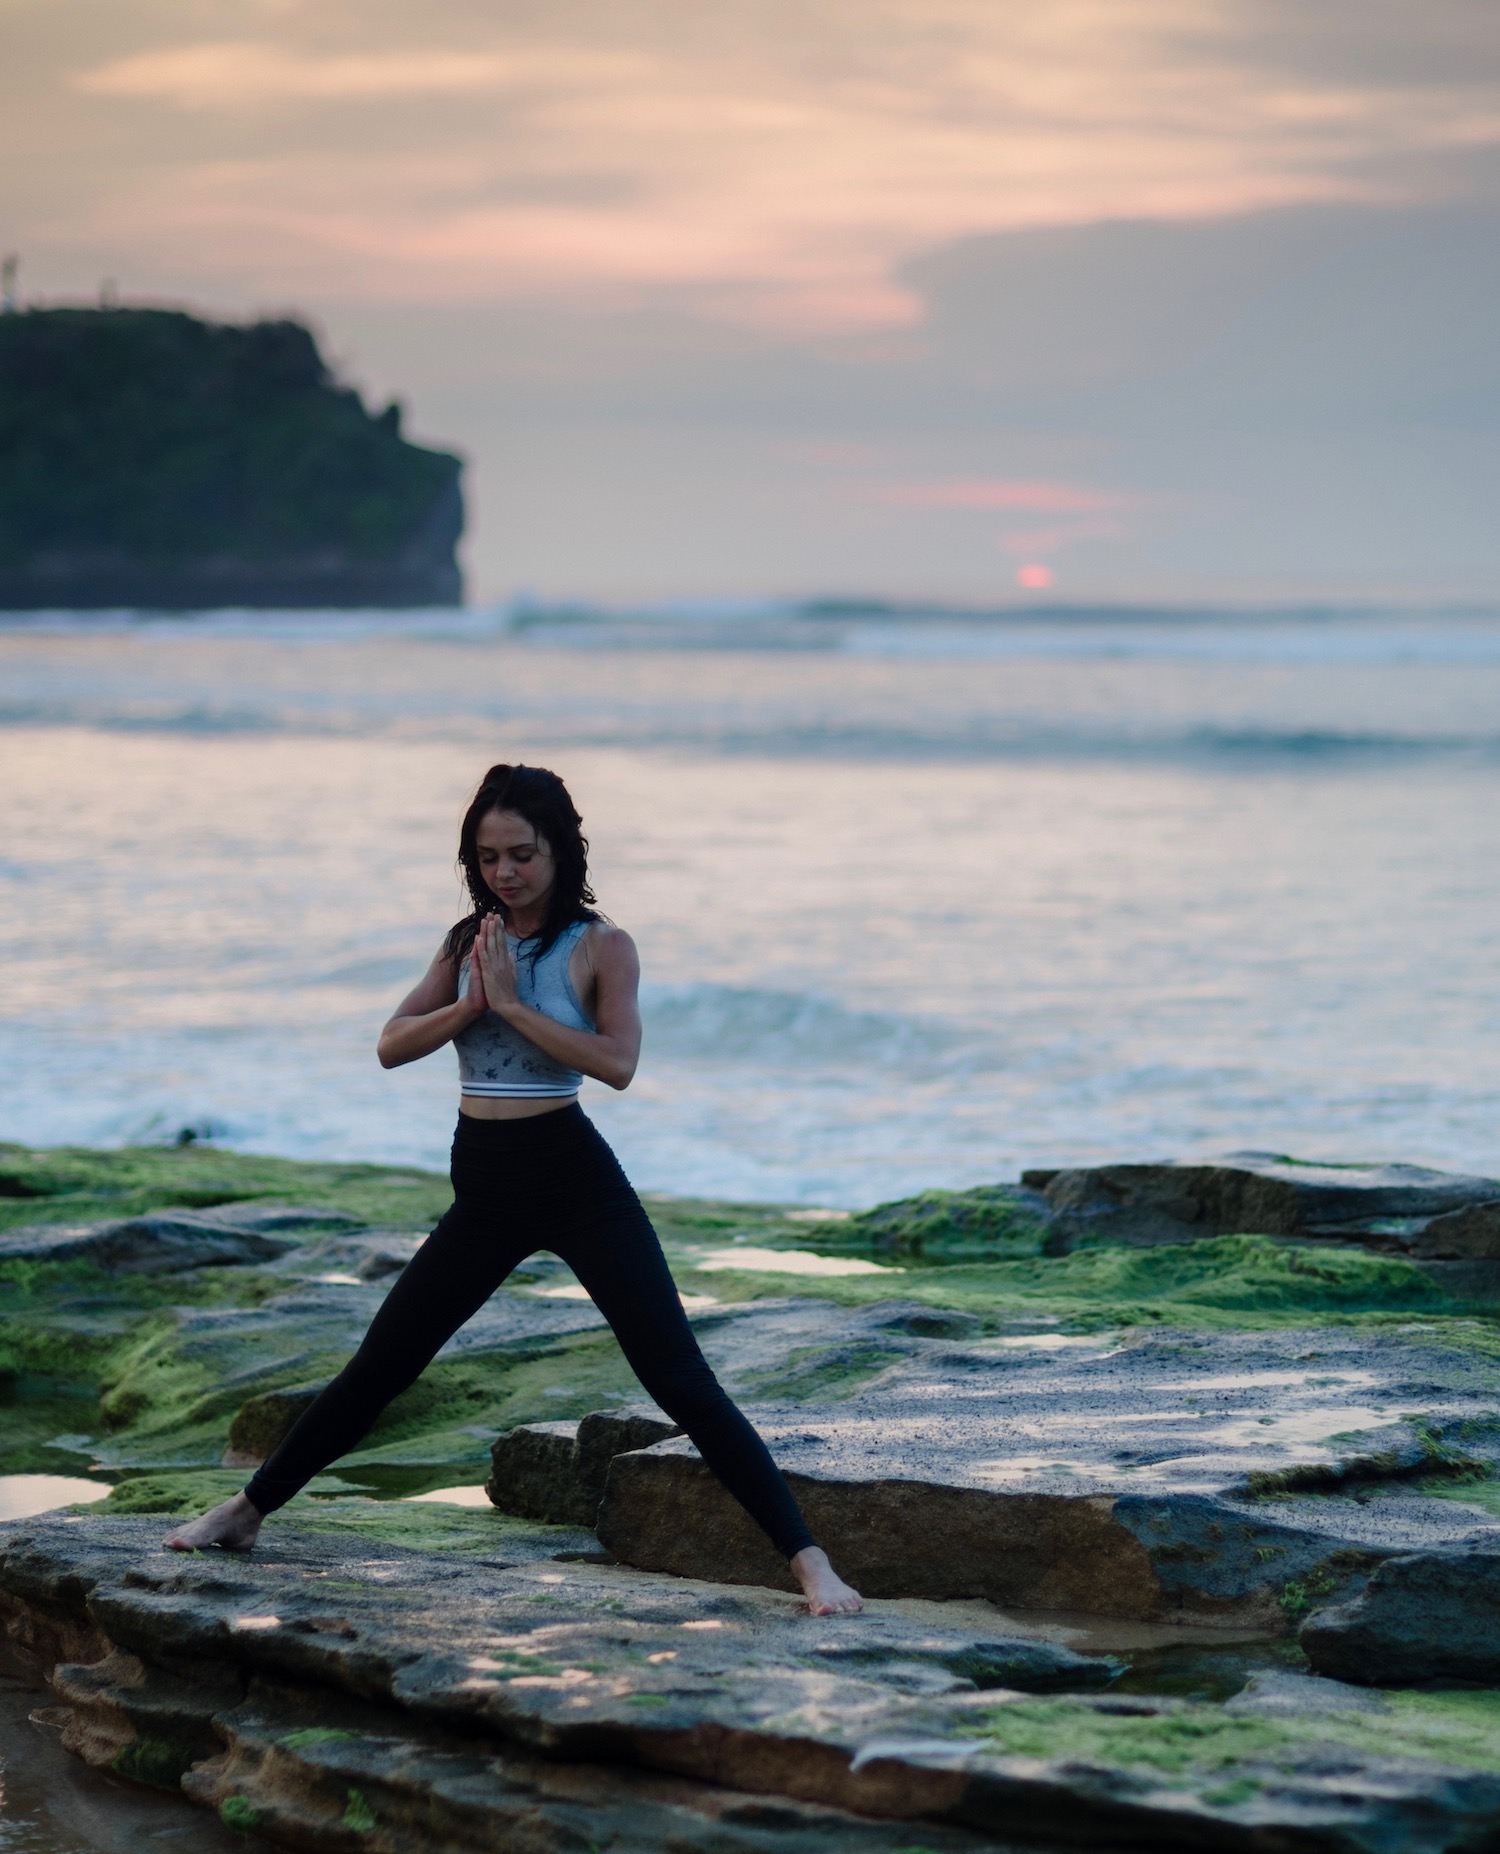 Woman doing yoga on rocky shore